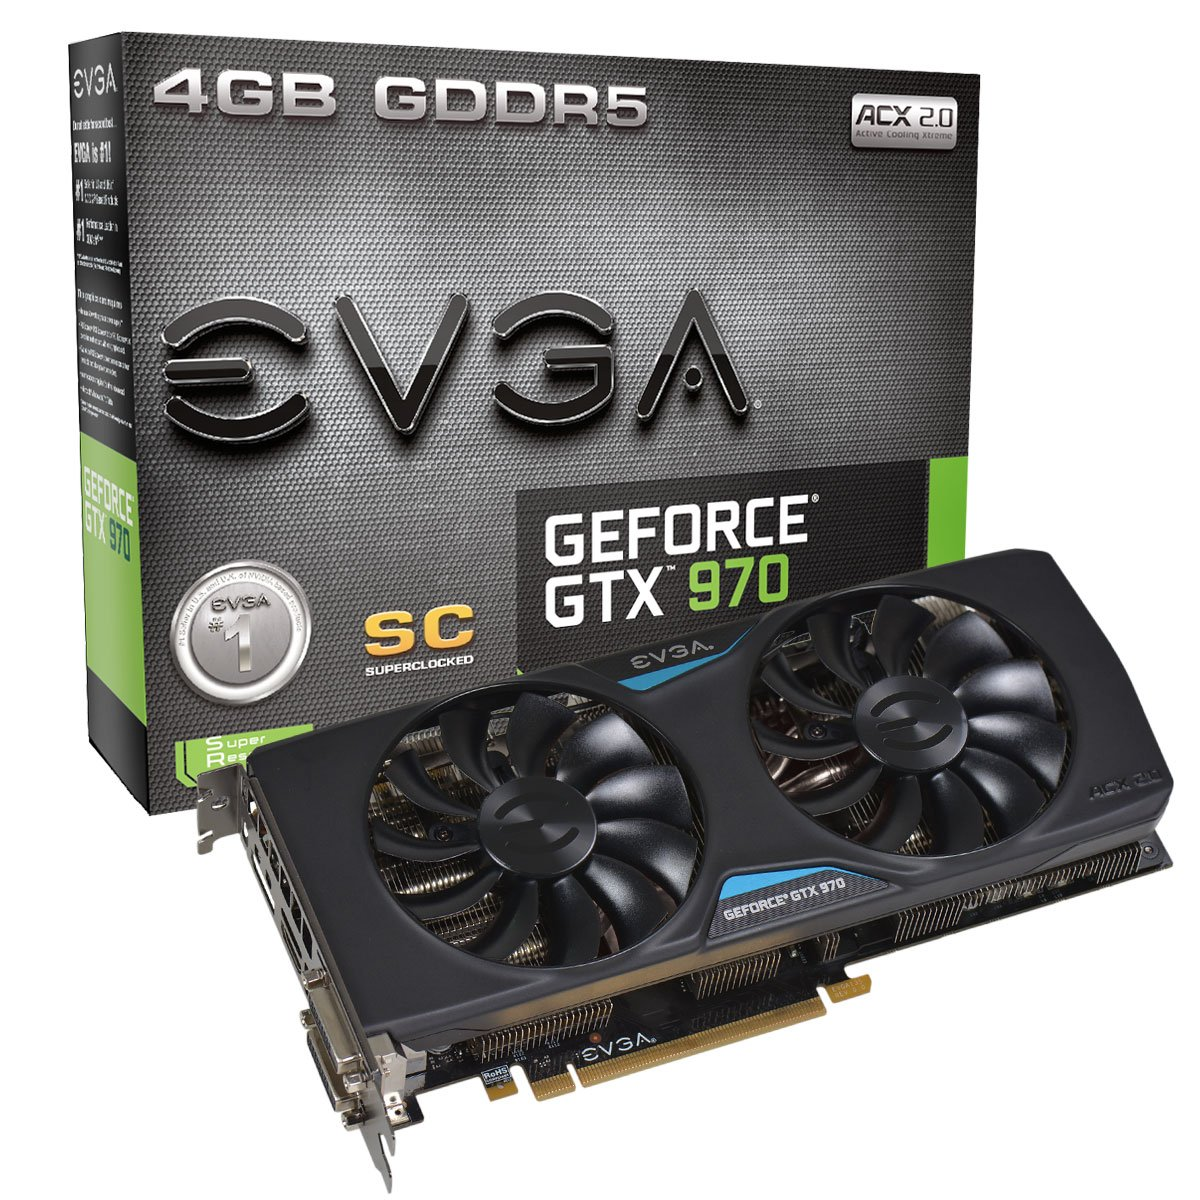 The Best Graphics Card Under $300 1